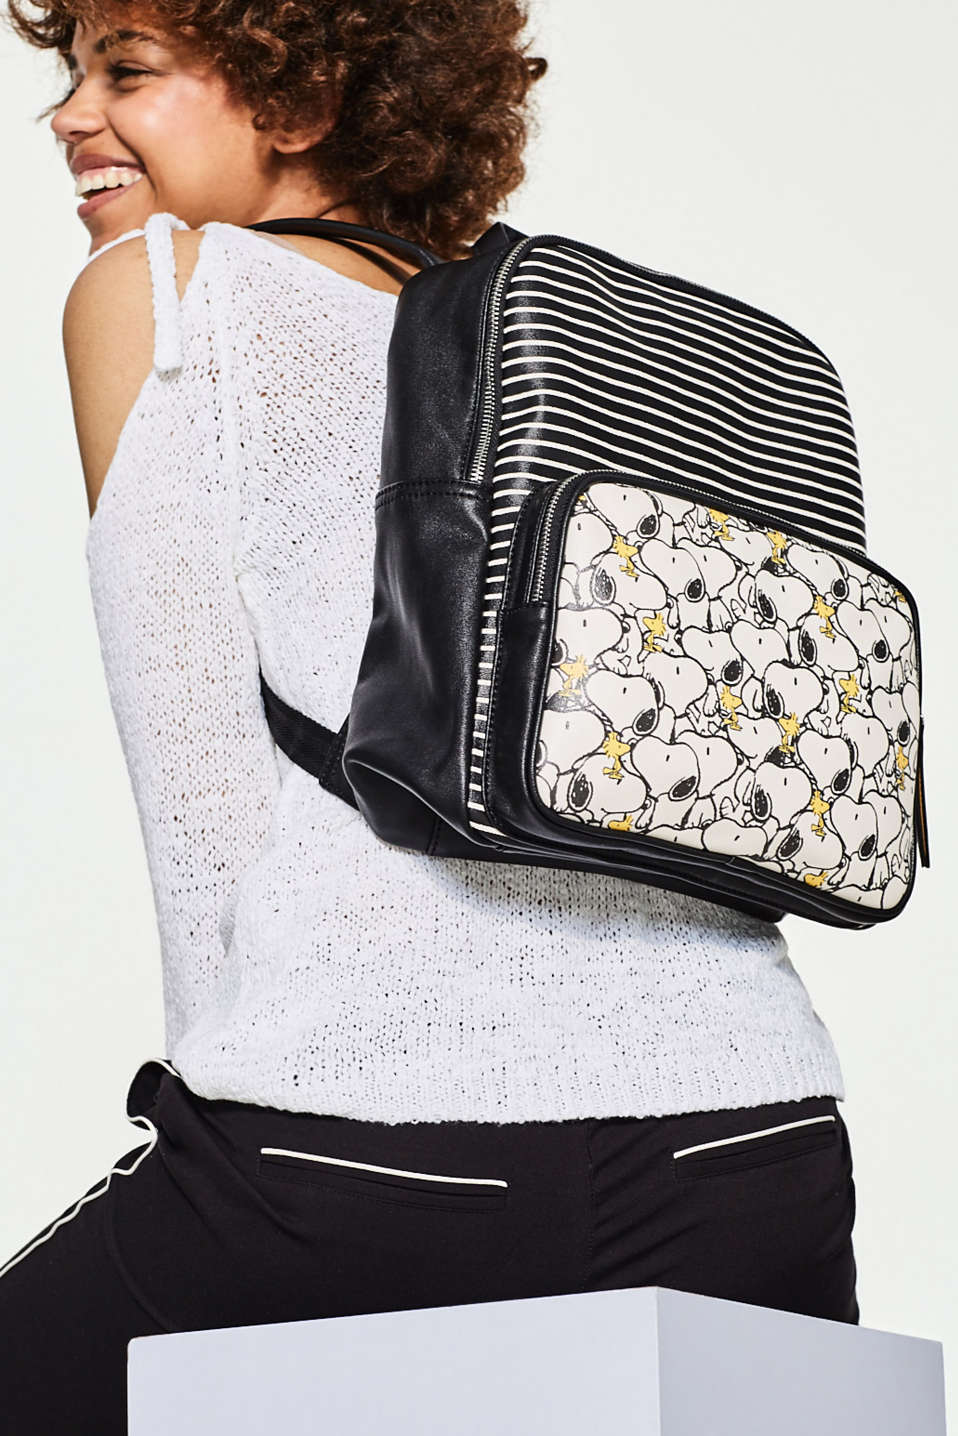 Snoopy-Rucksack in Leder-Optik